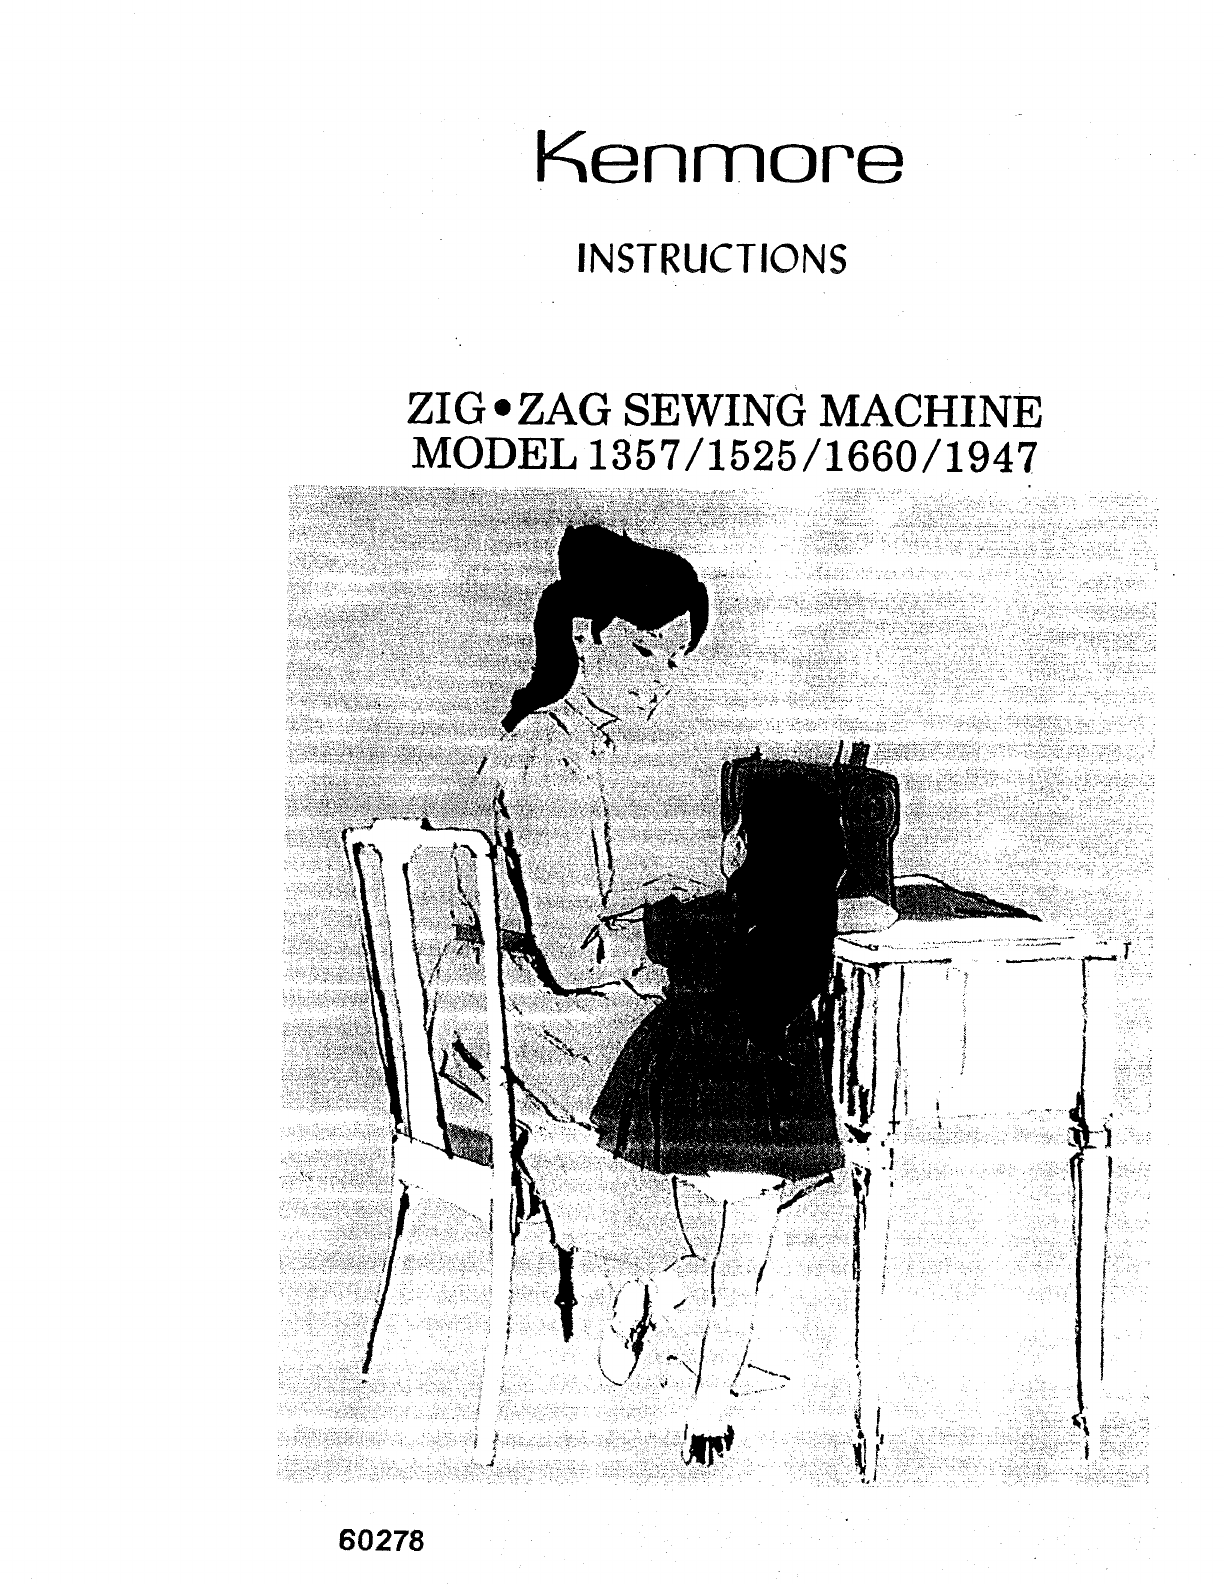 kenmore sewing machine 1947 user guide manualsonline com rh music manualsonline com DeLonghi User Manuals Canon ELPH Film